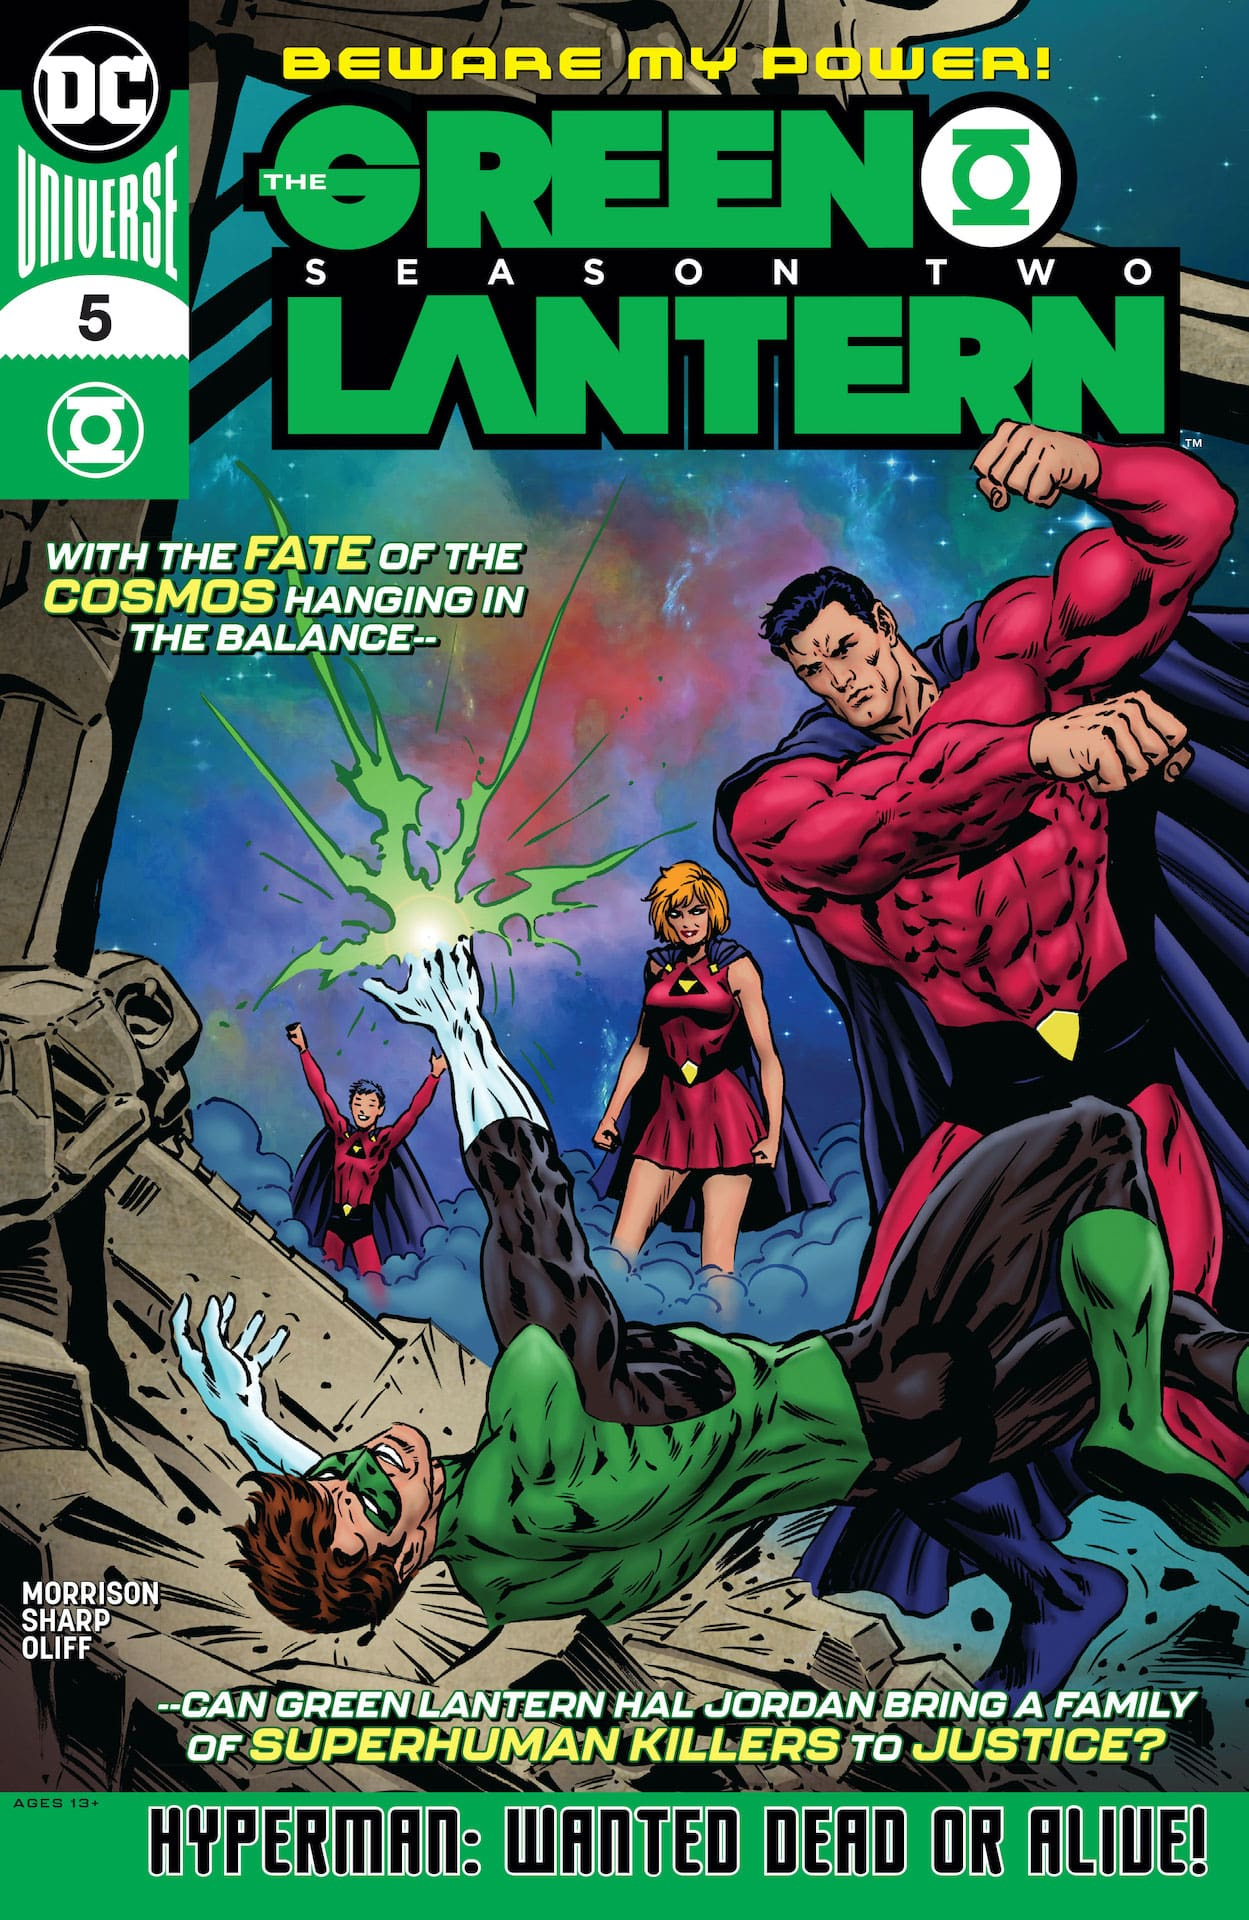 In the latest issue of this 12-part miniseries, Green Lantern Hal Jordan must test the limits of his ring's capabilities...